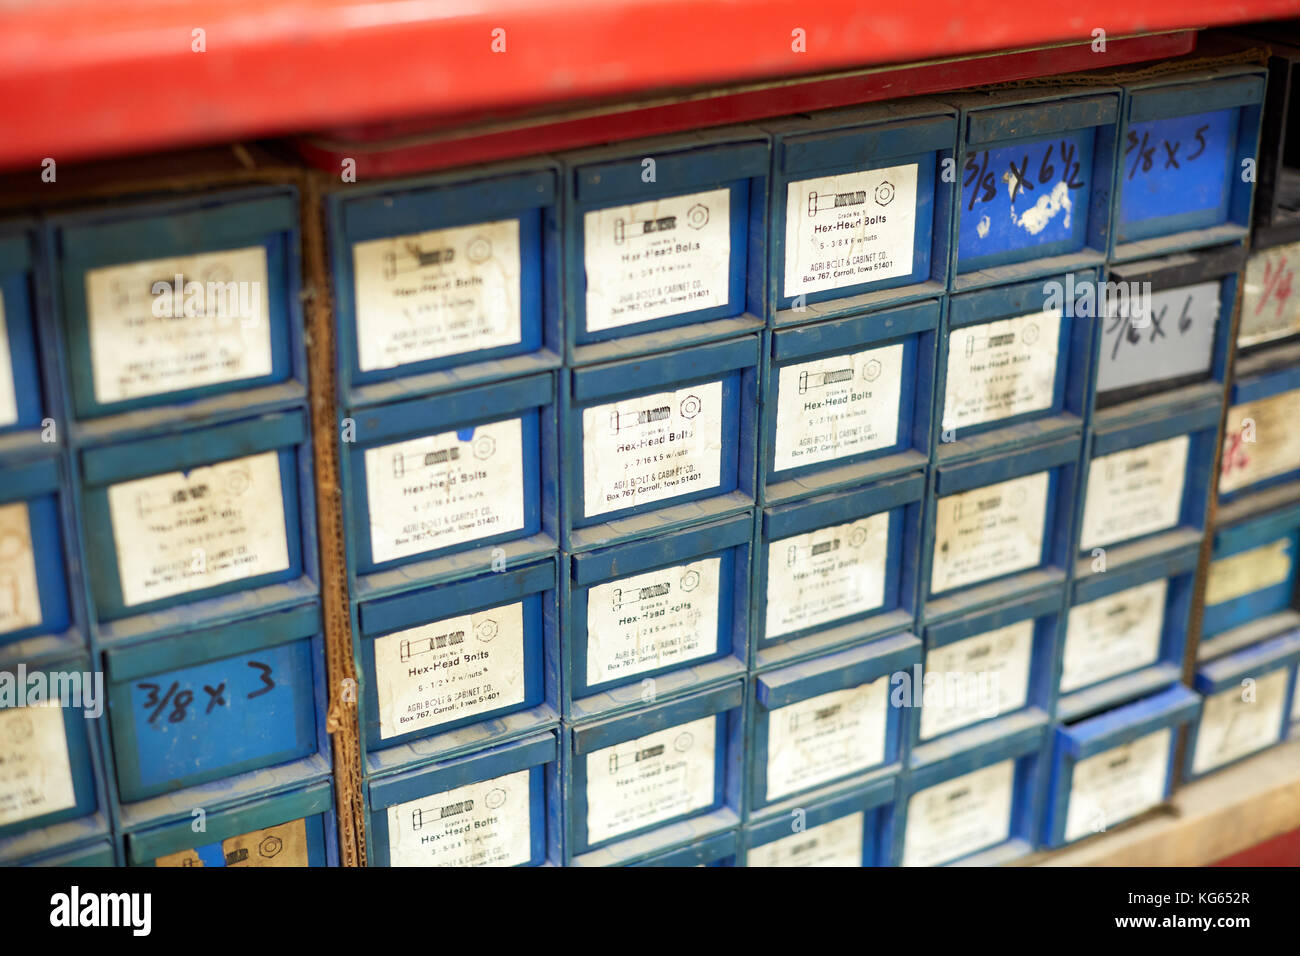 Storage Cabinet With Lots Of Small Drawers With Text Labels In An